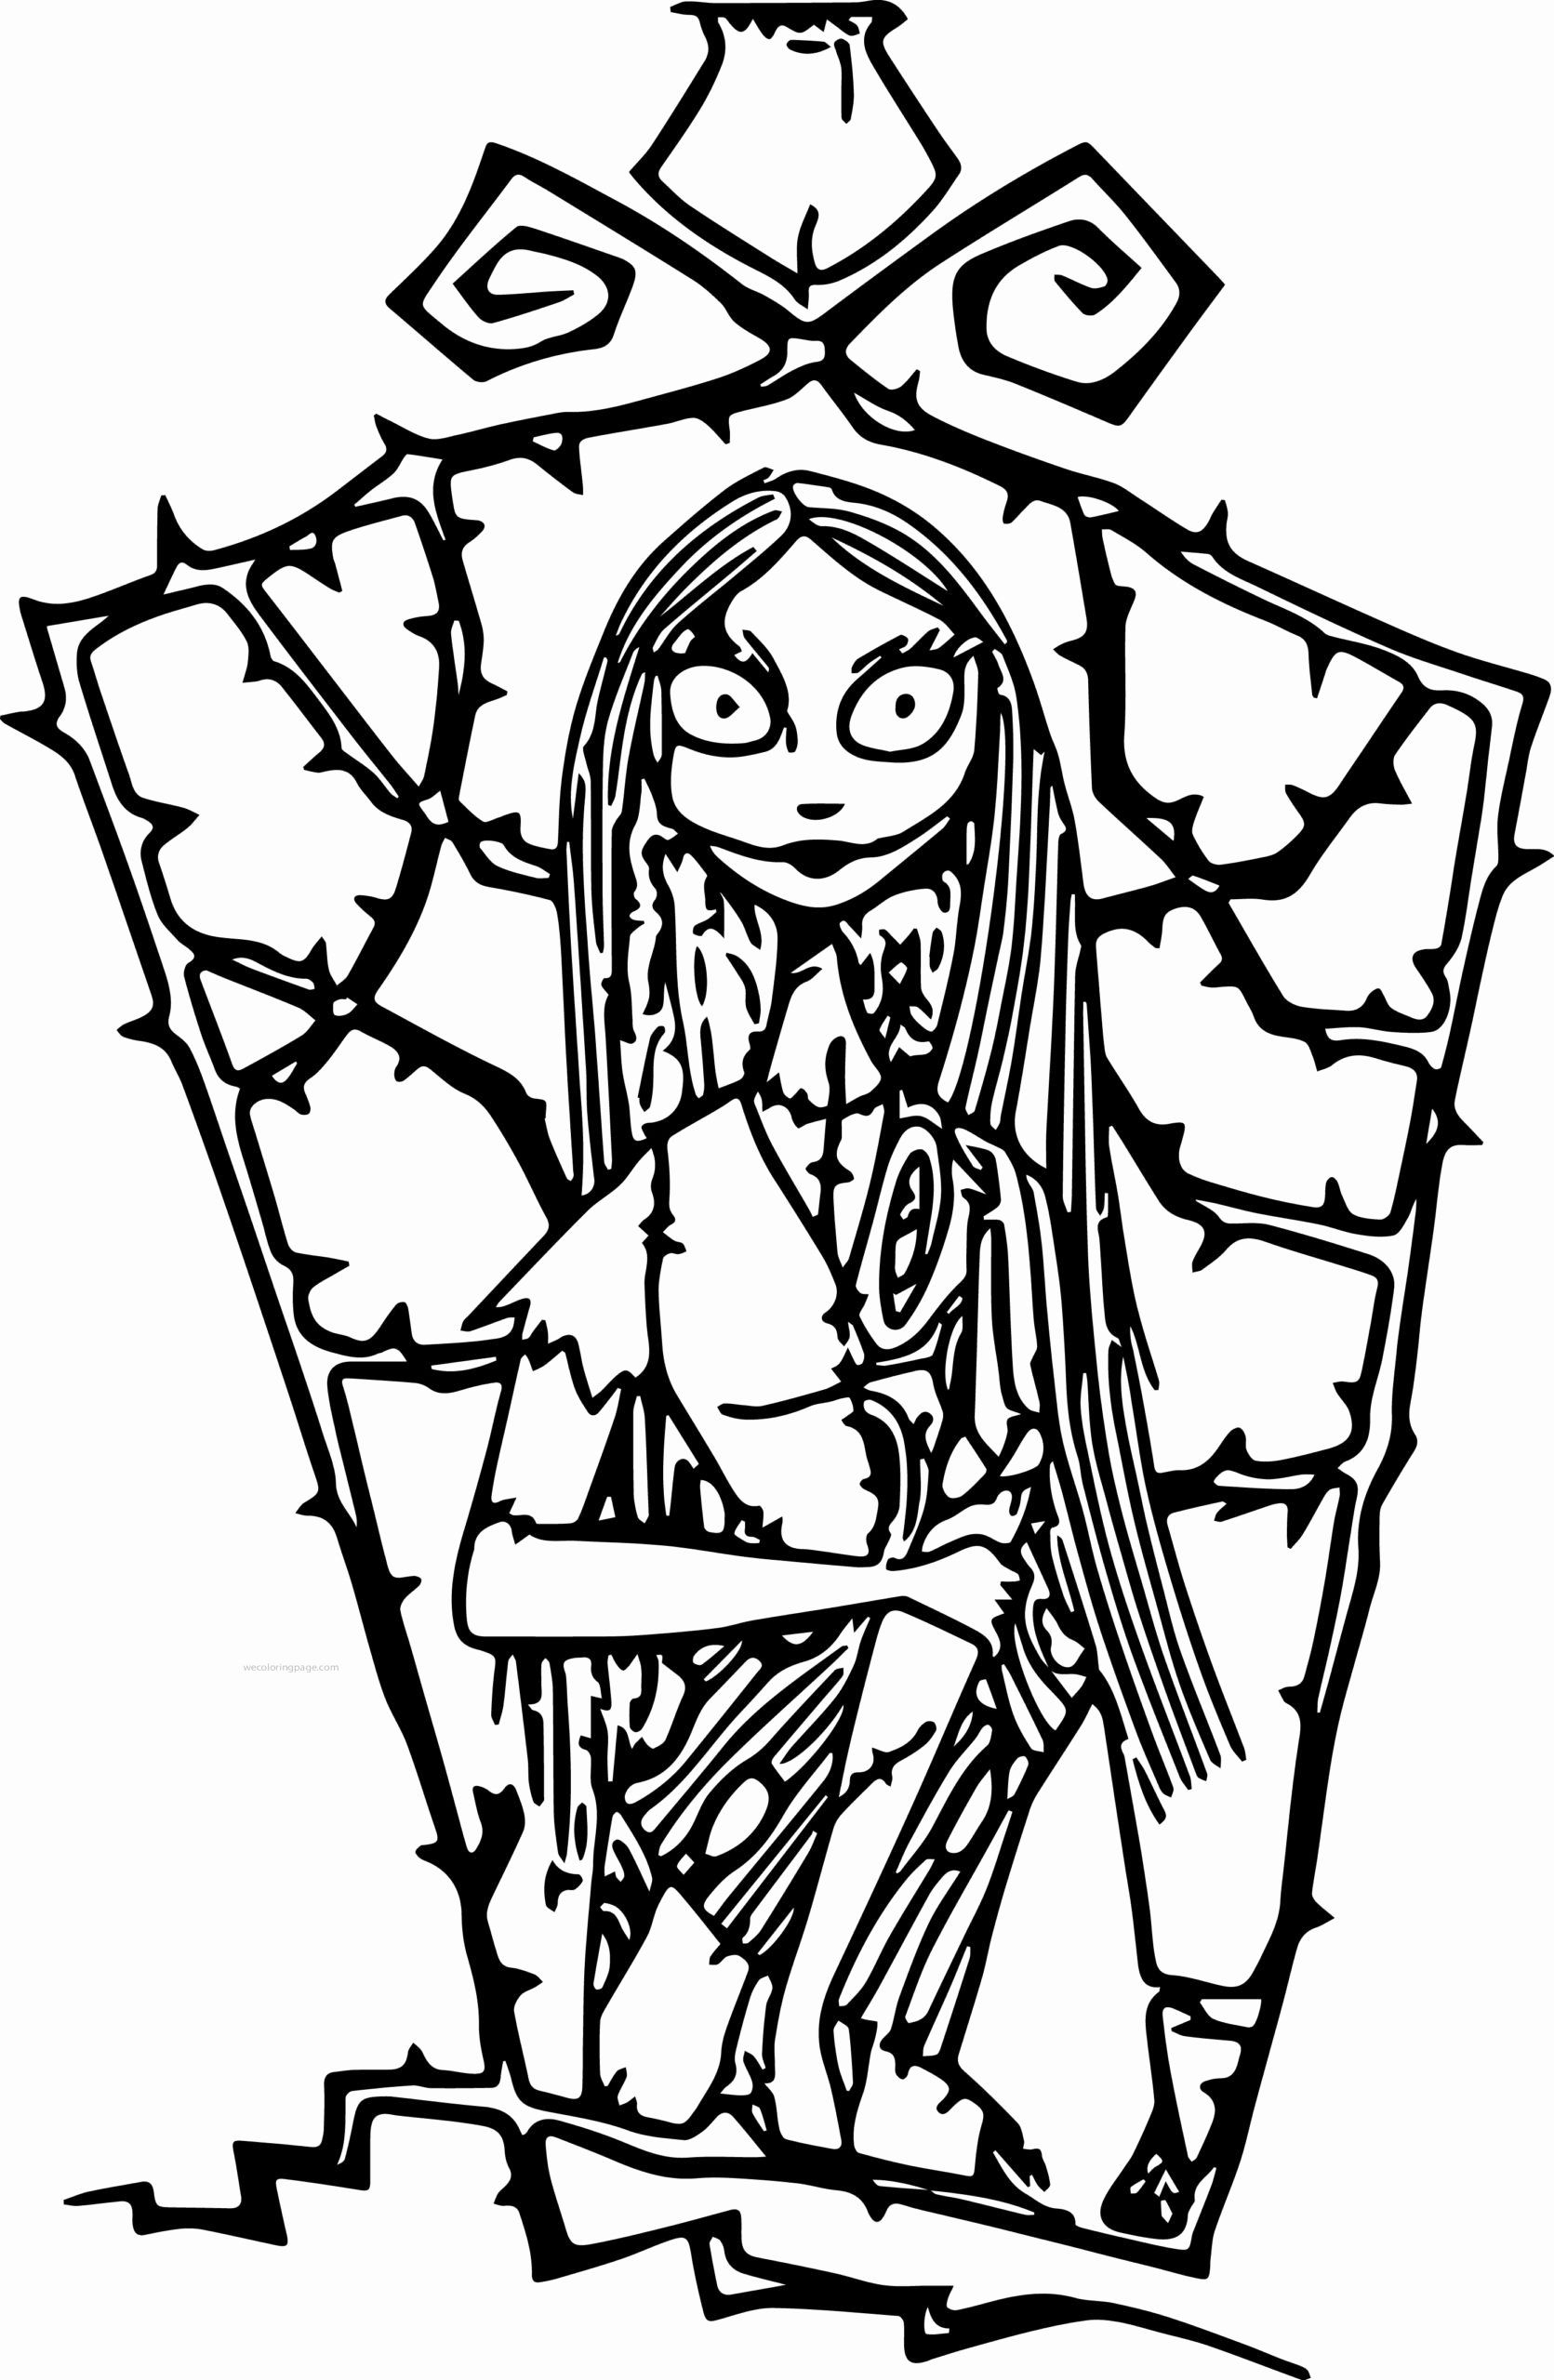 Xmas Coloring Sheets Printable Unique Coloring Pages Coloring Christ Nightmare Before Christmas Drawings Sally Nightmare Before Christmas Animal Coloring Pages